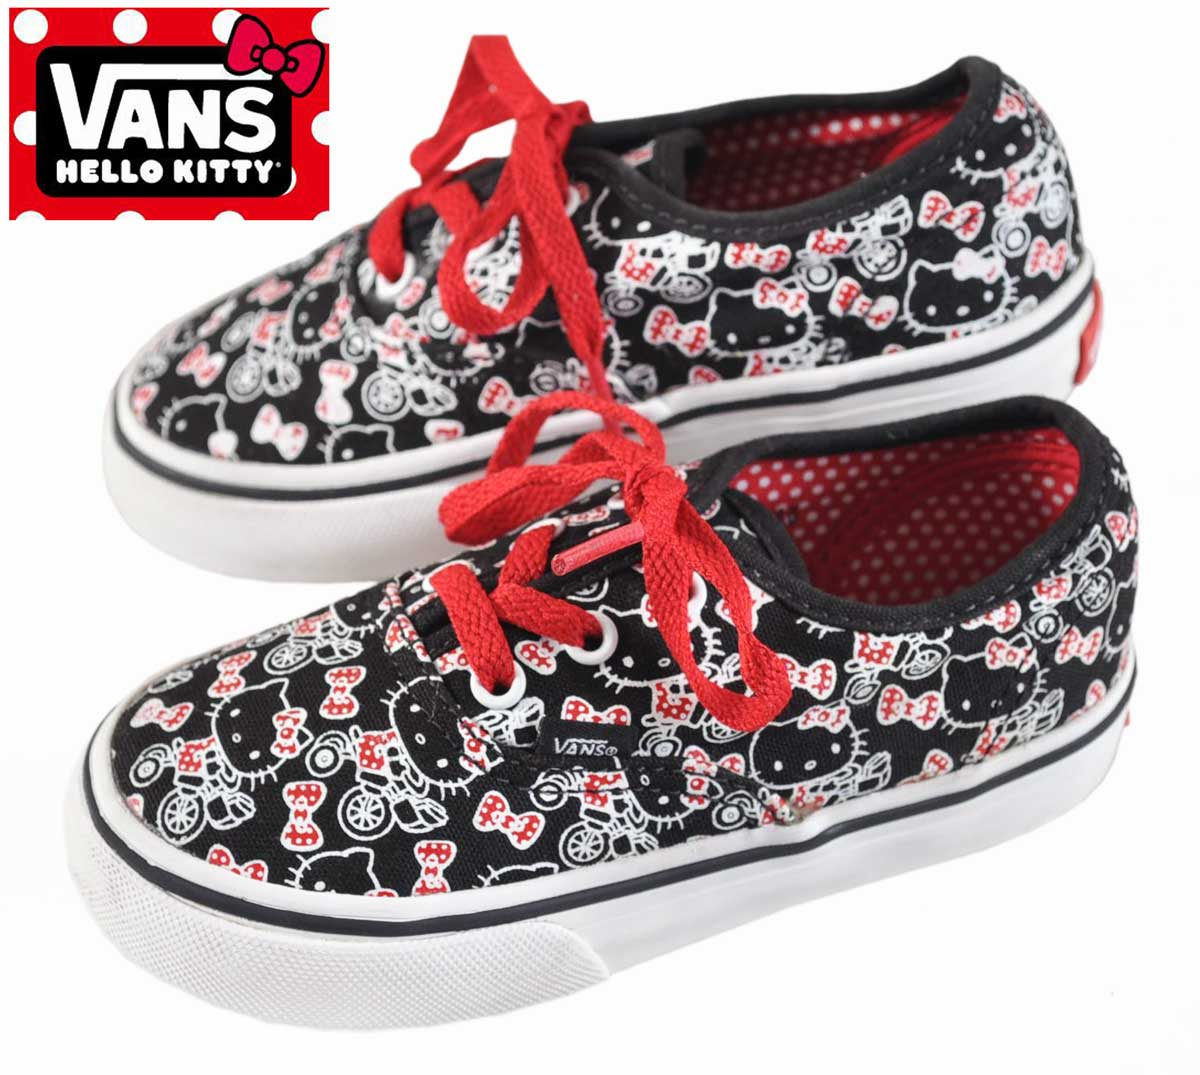 132330cfa VANSxHELLO KITTY vans x Hello Kitty / Authentic TD adidas toddler / Baby  Baby sneakers canvasdeckthews ...